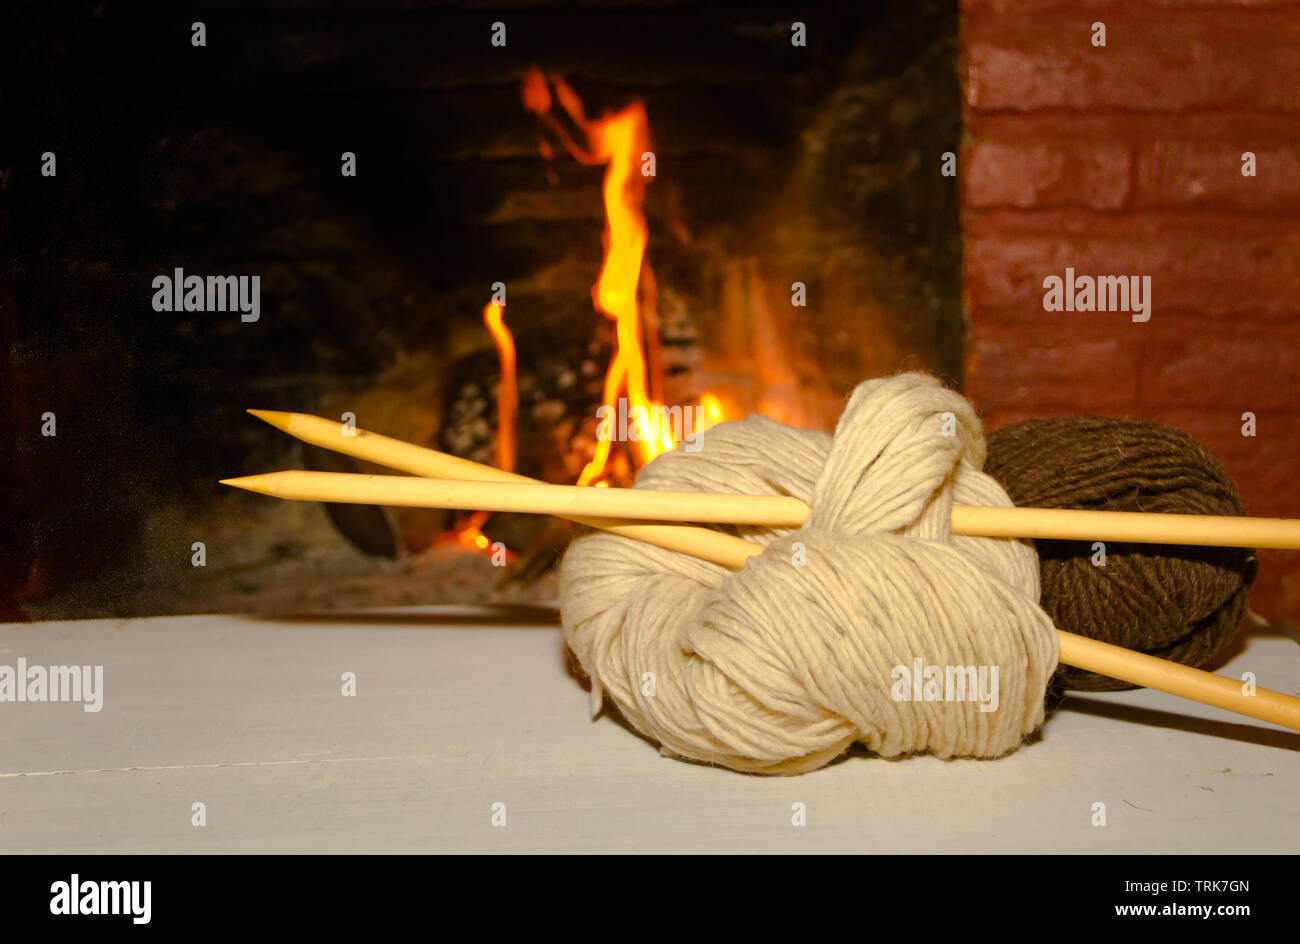 winter concept knitting wool and tricot needles with fire from home on wood background - Stock Image